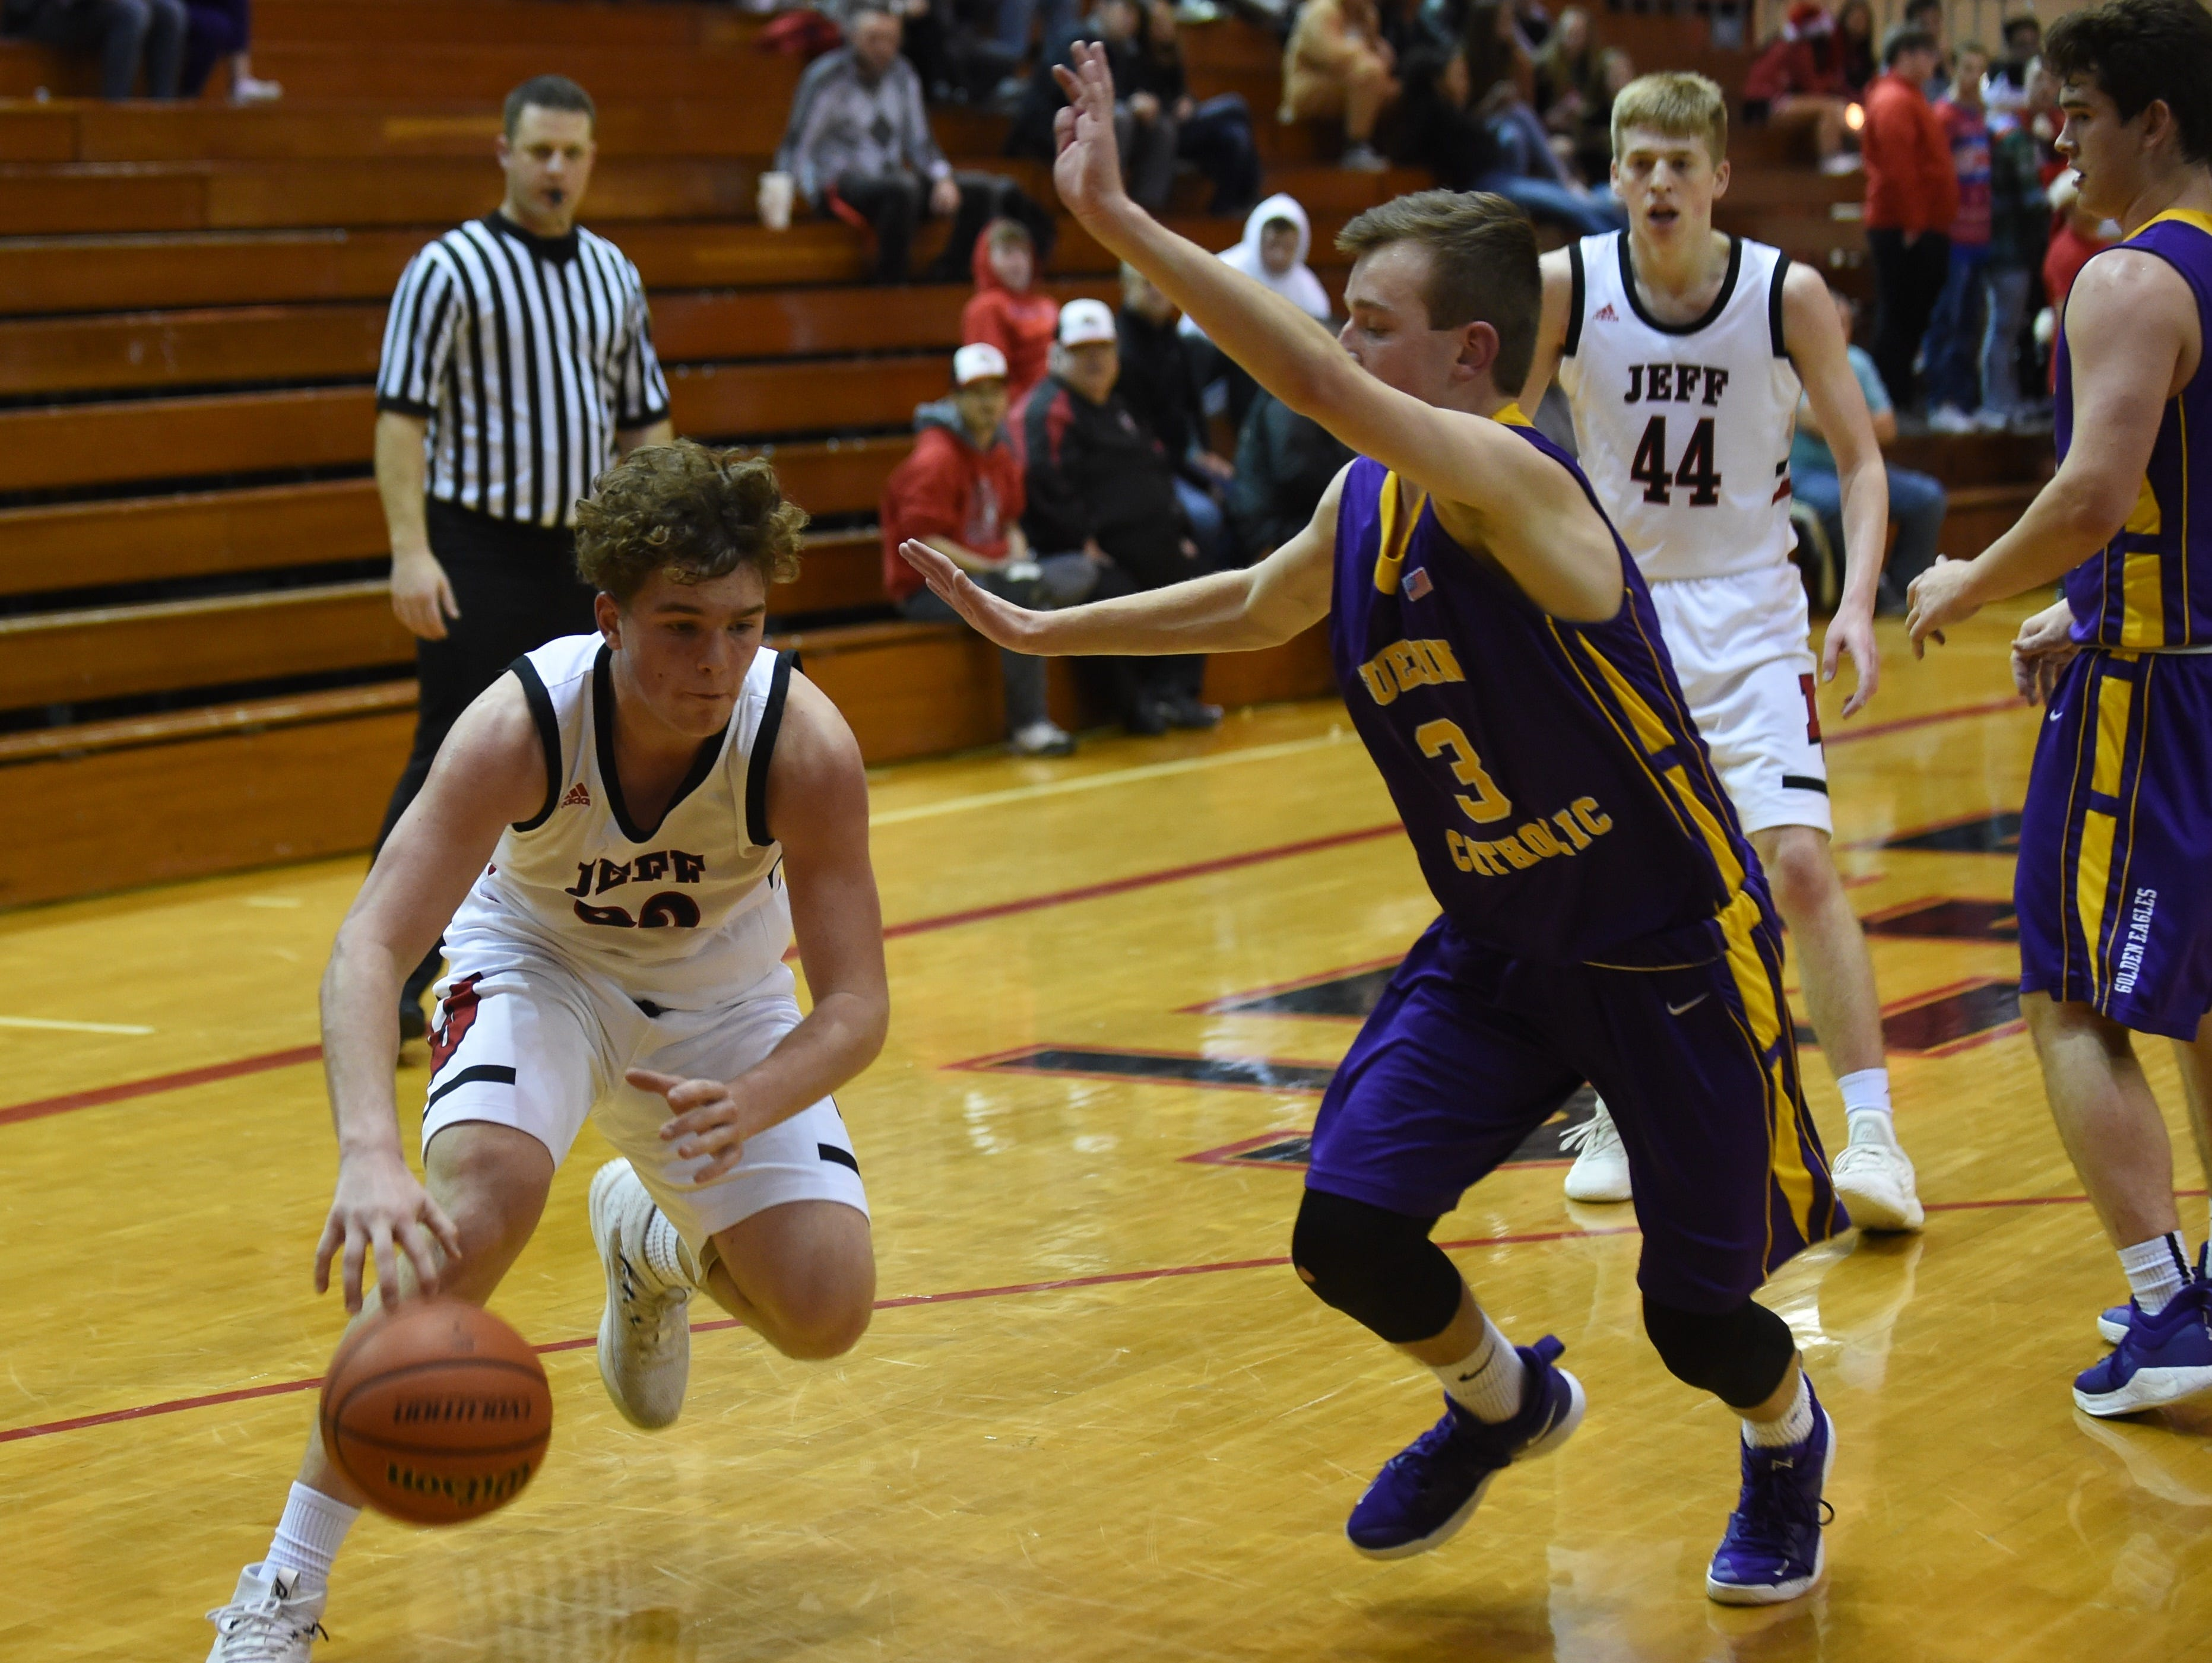 Scenes from Saturday night as the Bronchos battled the Golden Eagles of Guerin Catholic. Ashton Beaver.